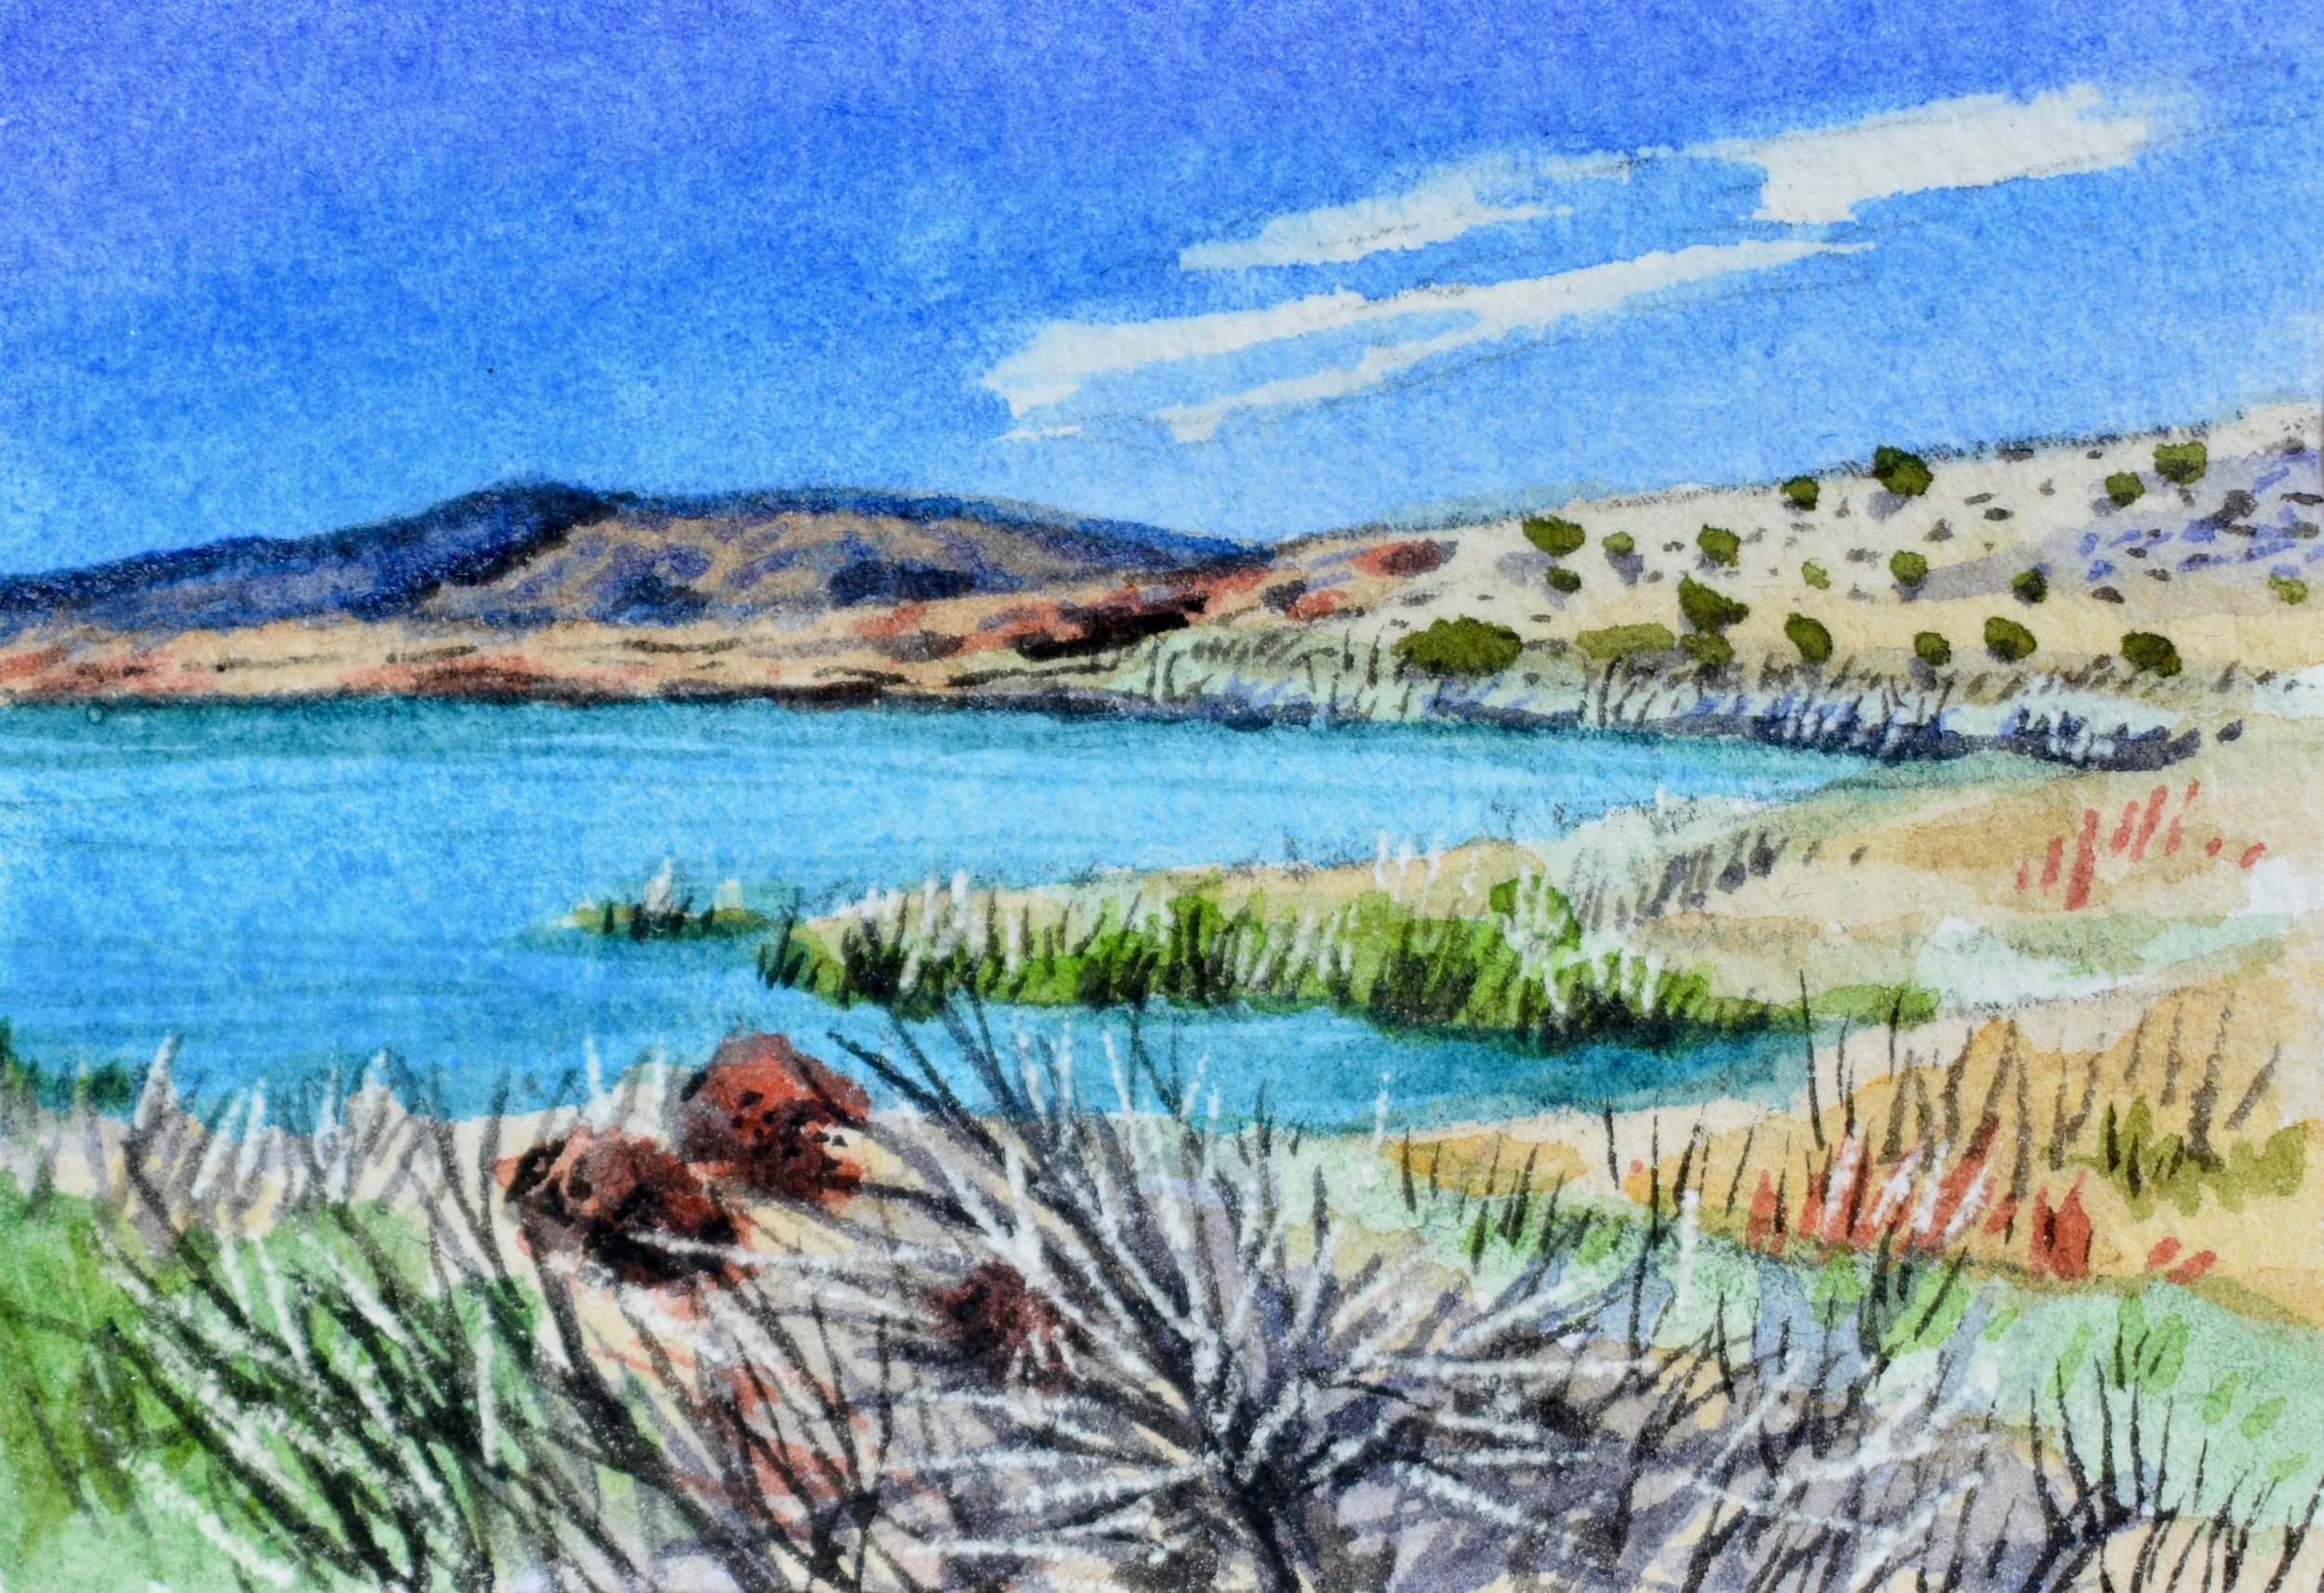 """Havasu National Wildlife Refuge, Arizona: 3/3/19, 12:26:27""  For sale as of this blog posting  3x2"""